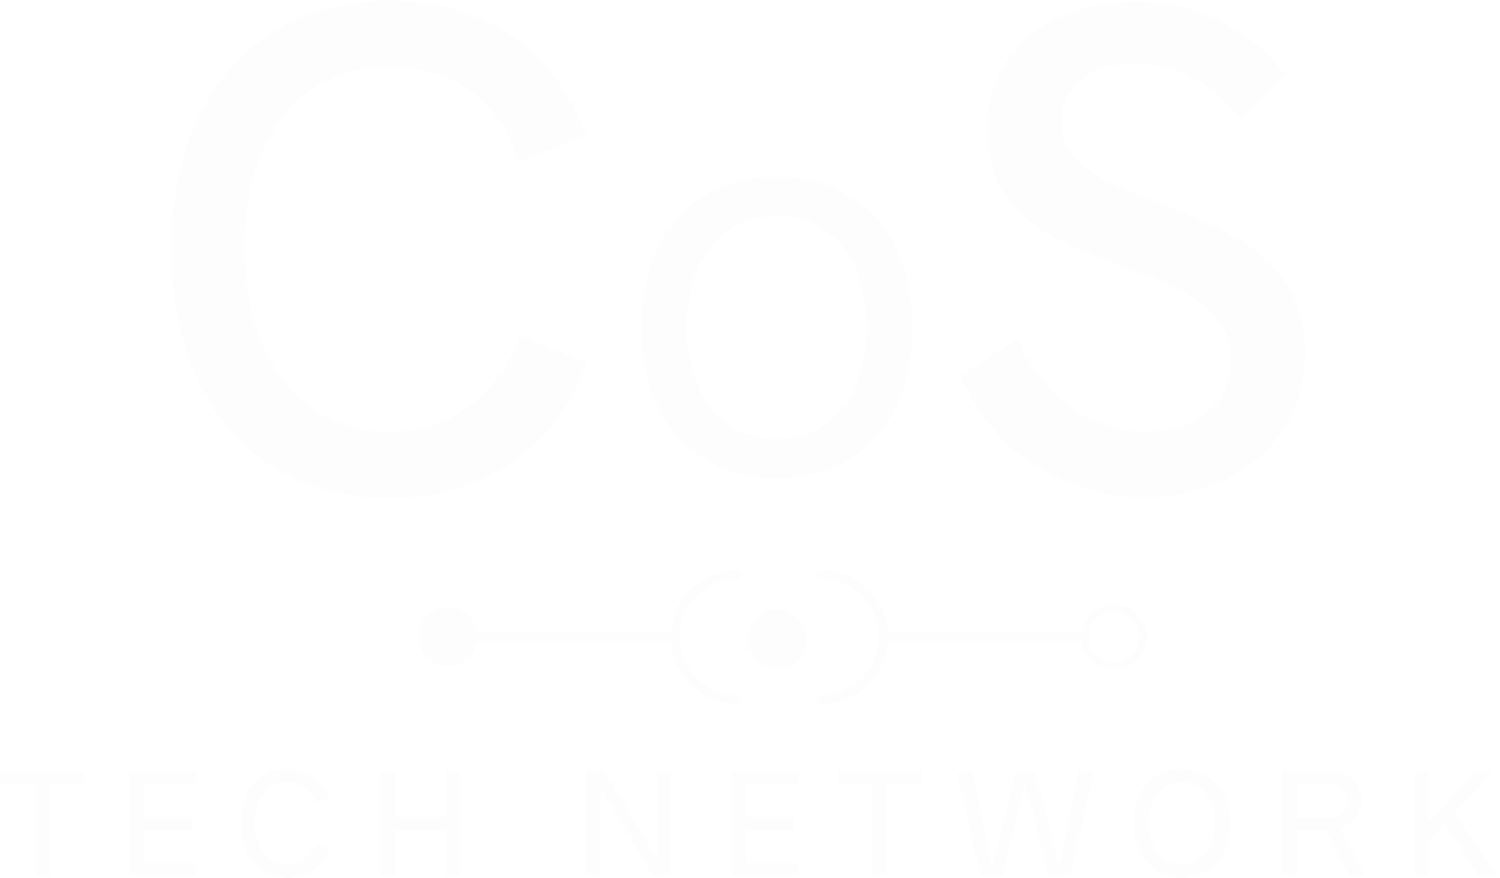 COS TECH NETWORK